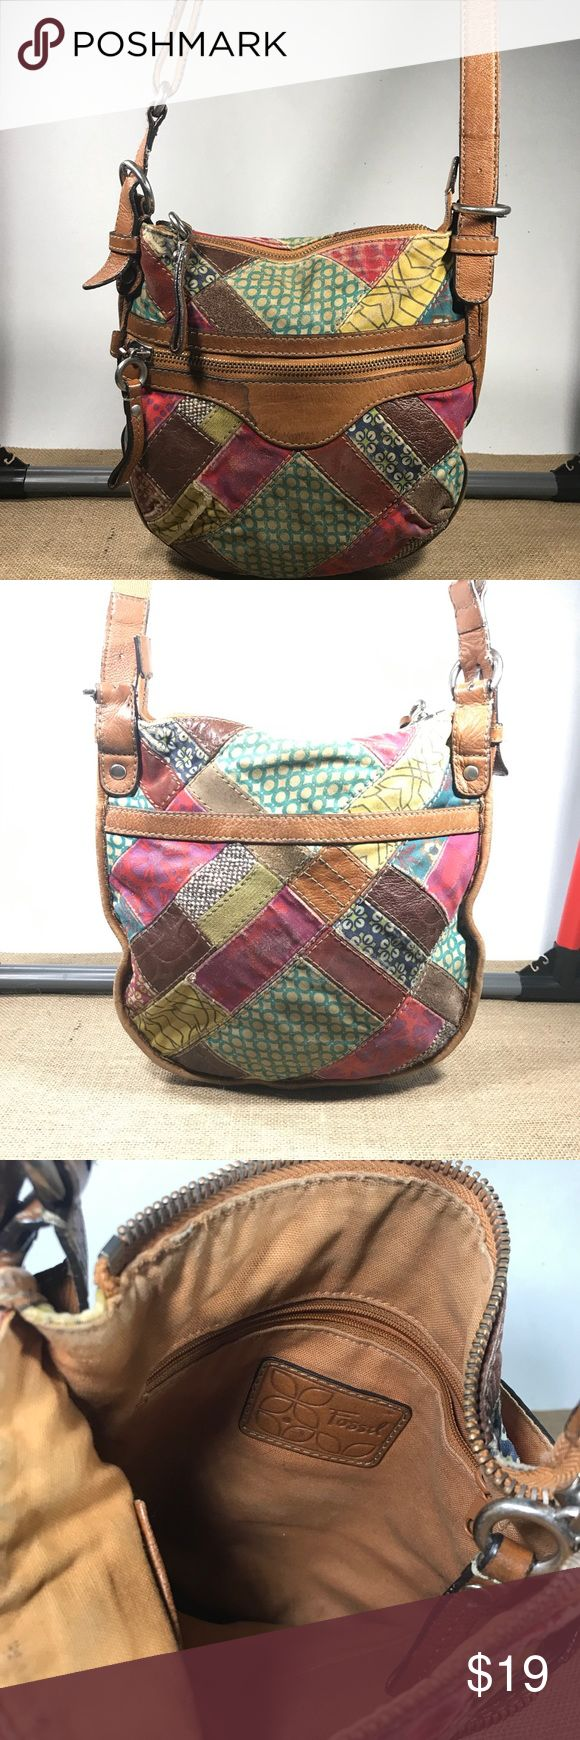 Fossil Leather Patchwork multi Color Shoulder Bag In good condition, colors have faded a little and there is a water stain on the front. Fossil Bags Shoulder Bags